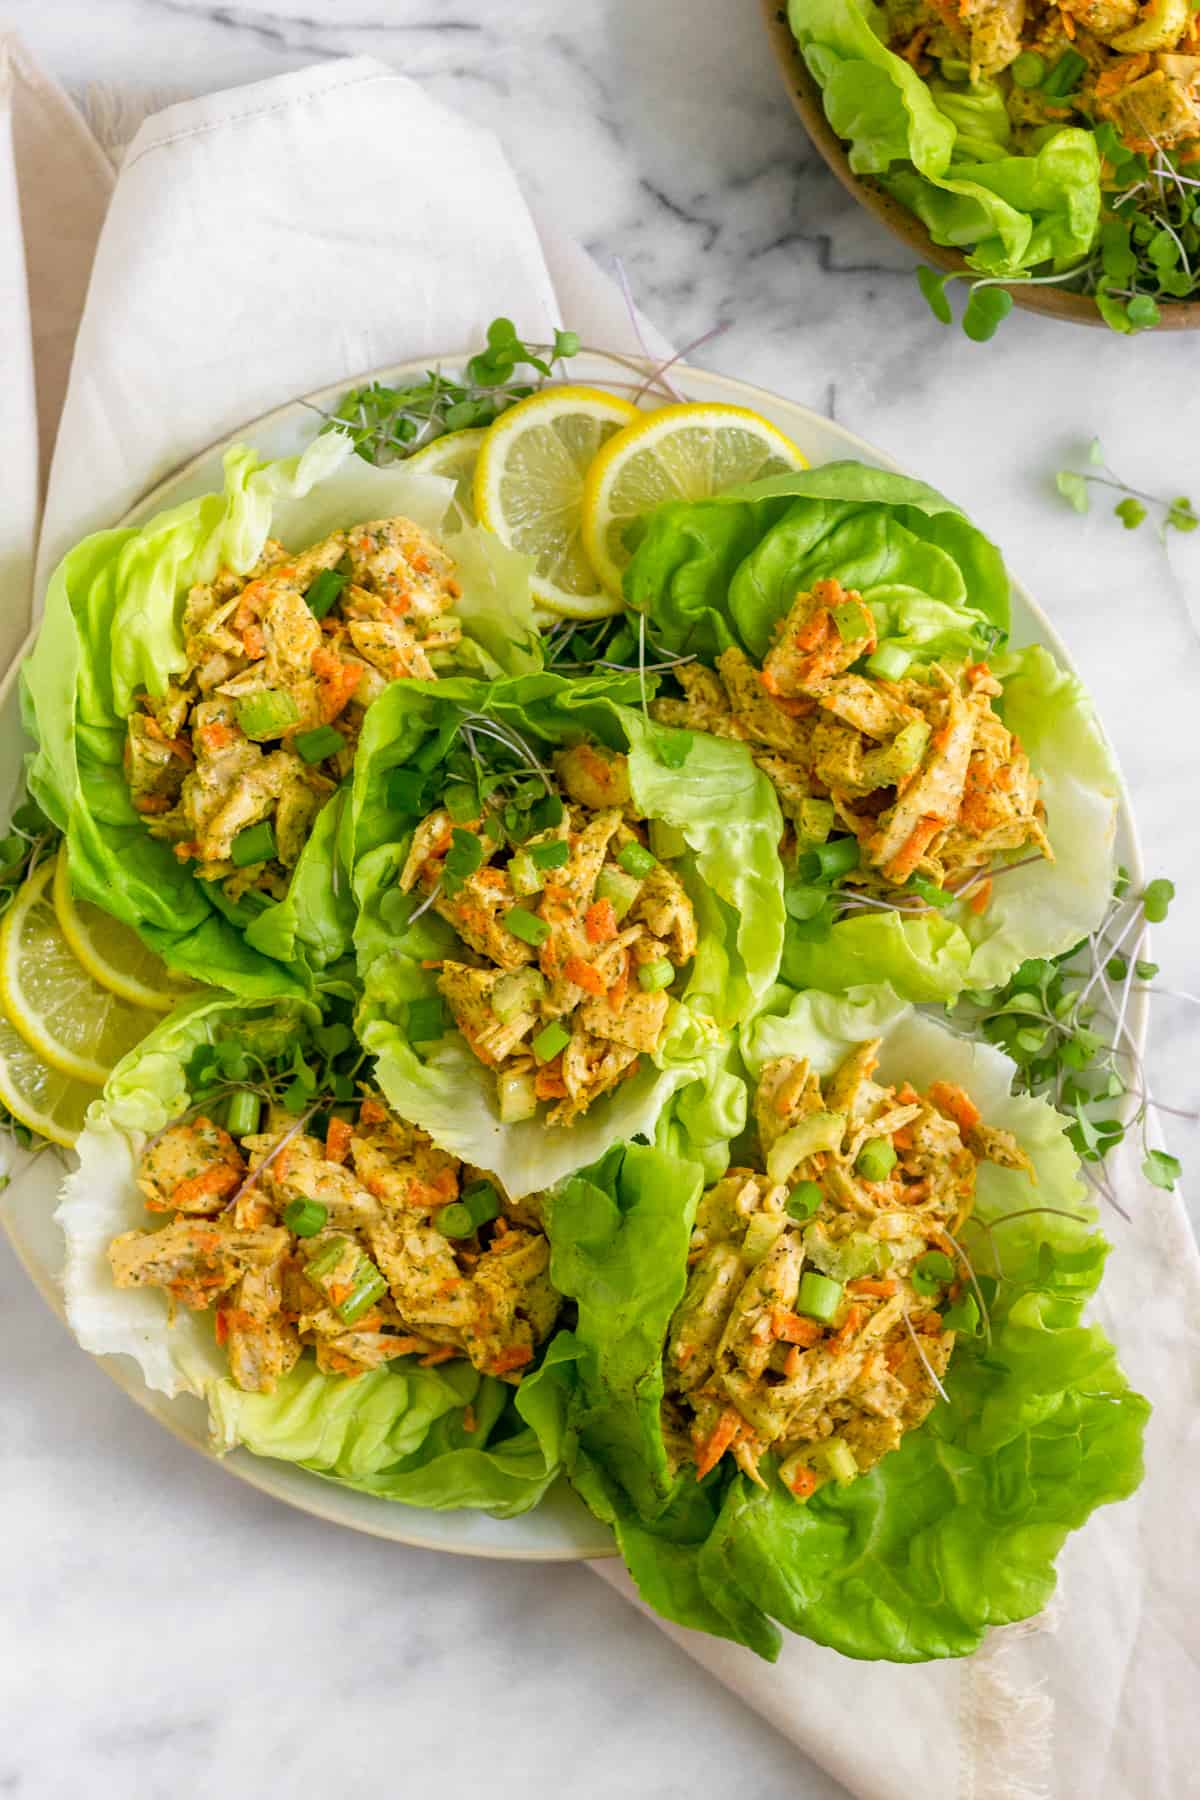 Large large over a tan linen filled with lettuce cups filled with Paleo Buffalo Ranch Chicken Salad with green onion and lemon wedges as garnish and next to a bowl of buffalo ranch chicken salad